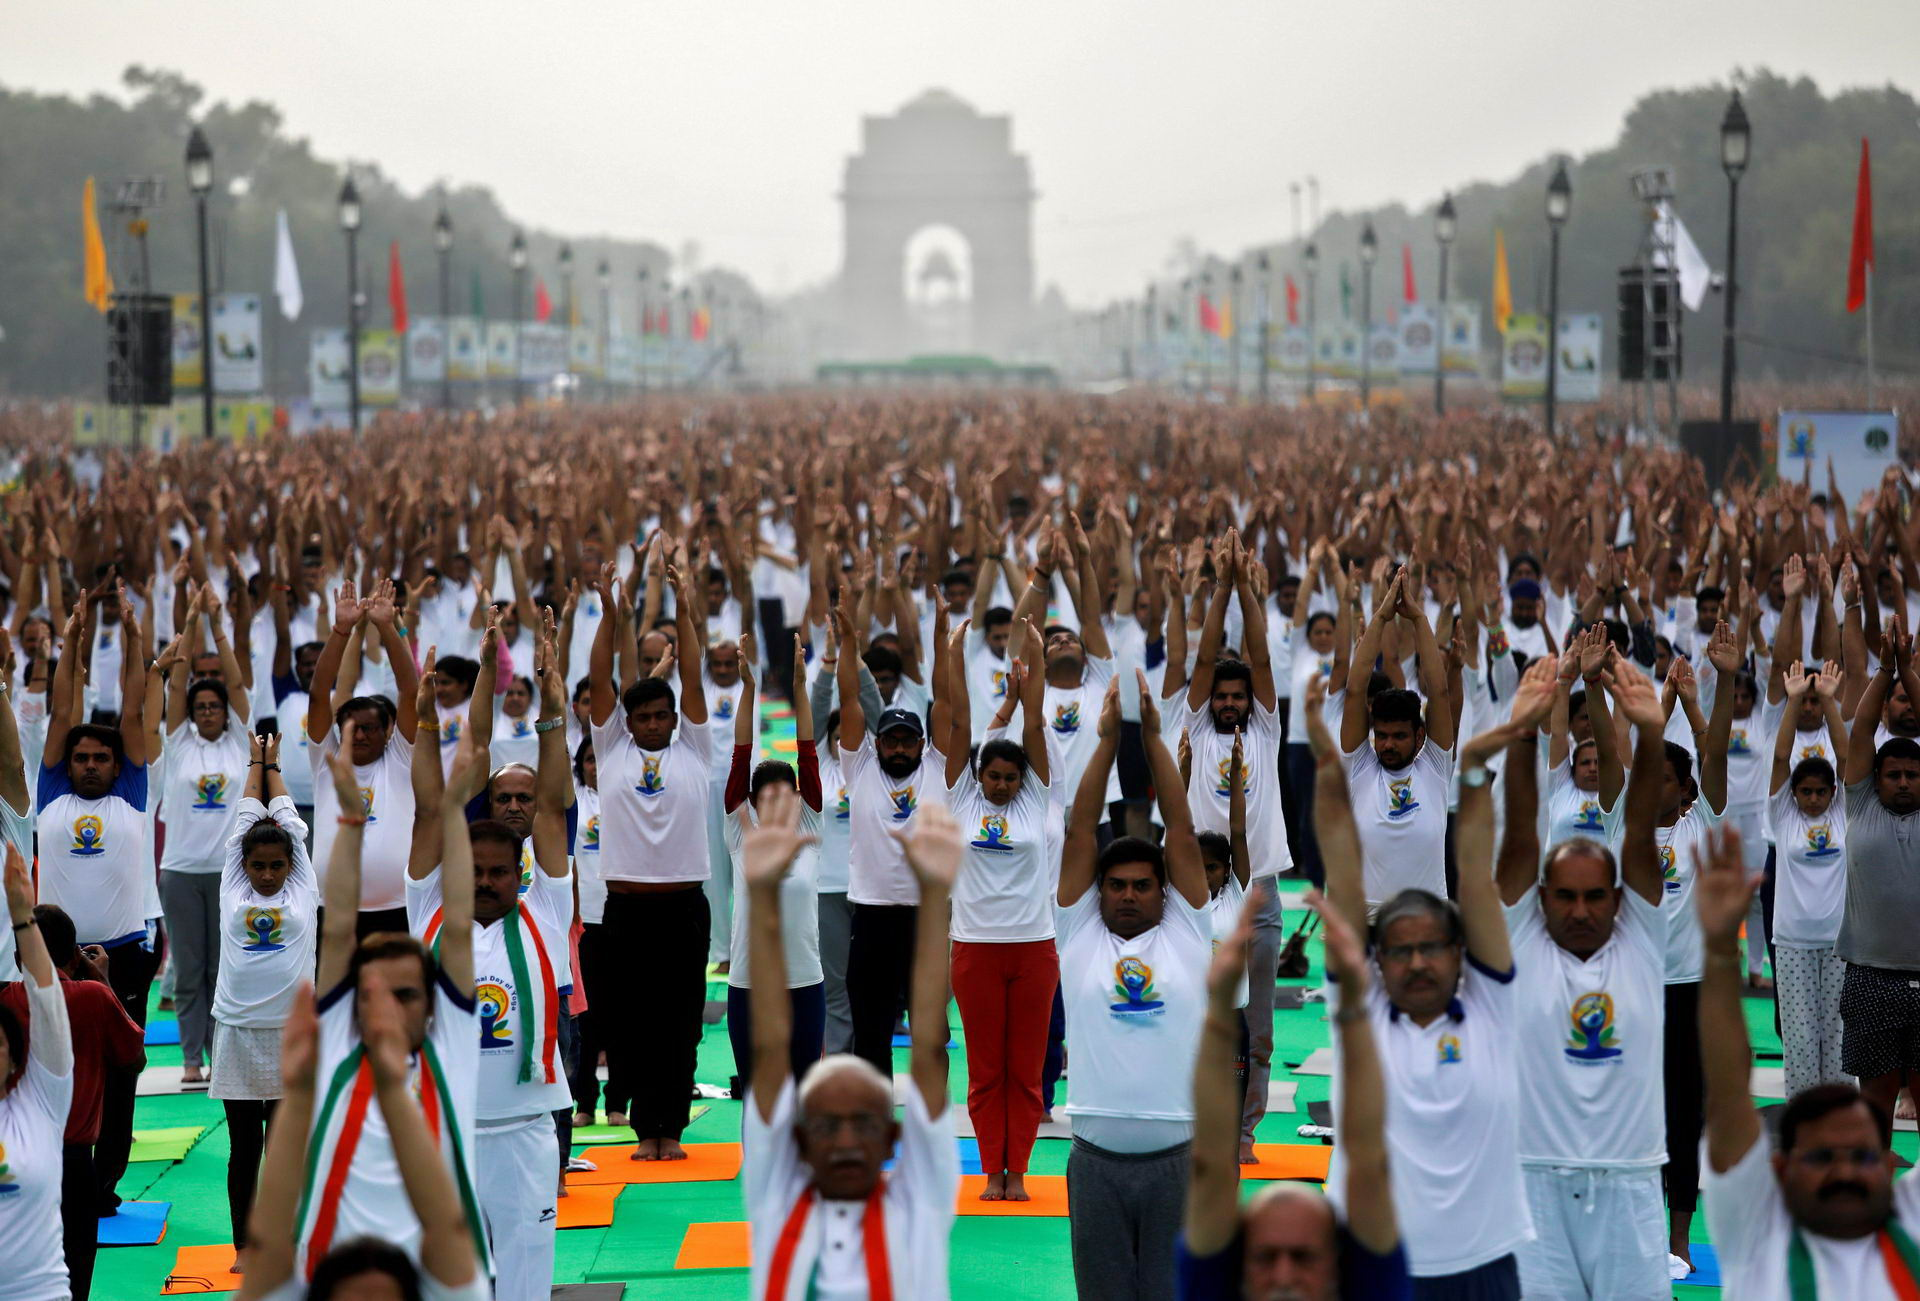 People perform yoga at India Gate on International Yoga Day in New Delhi